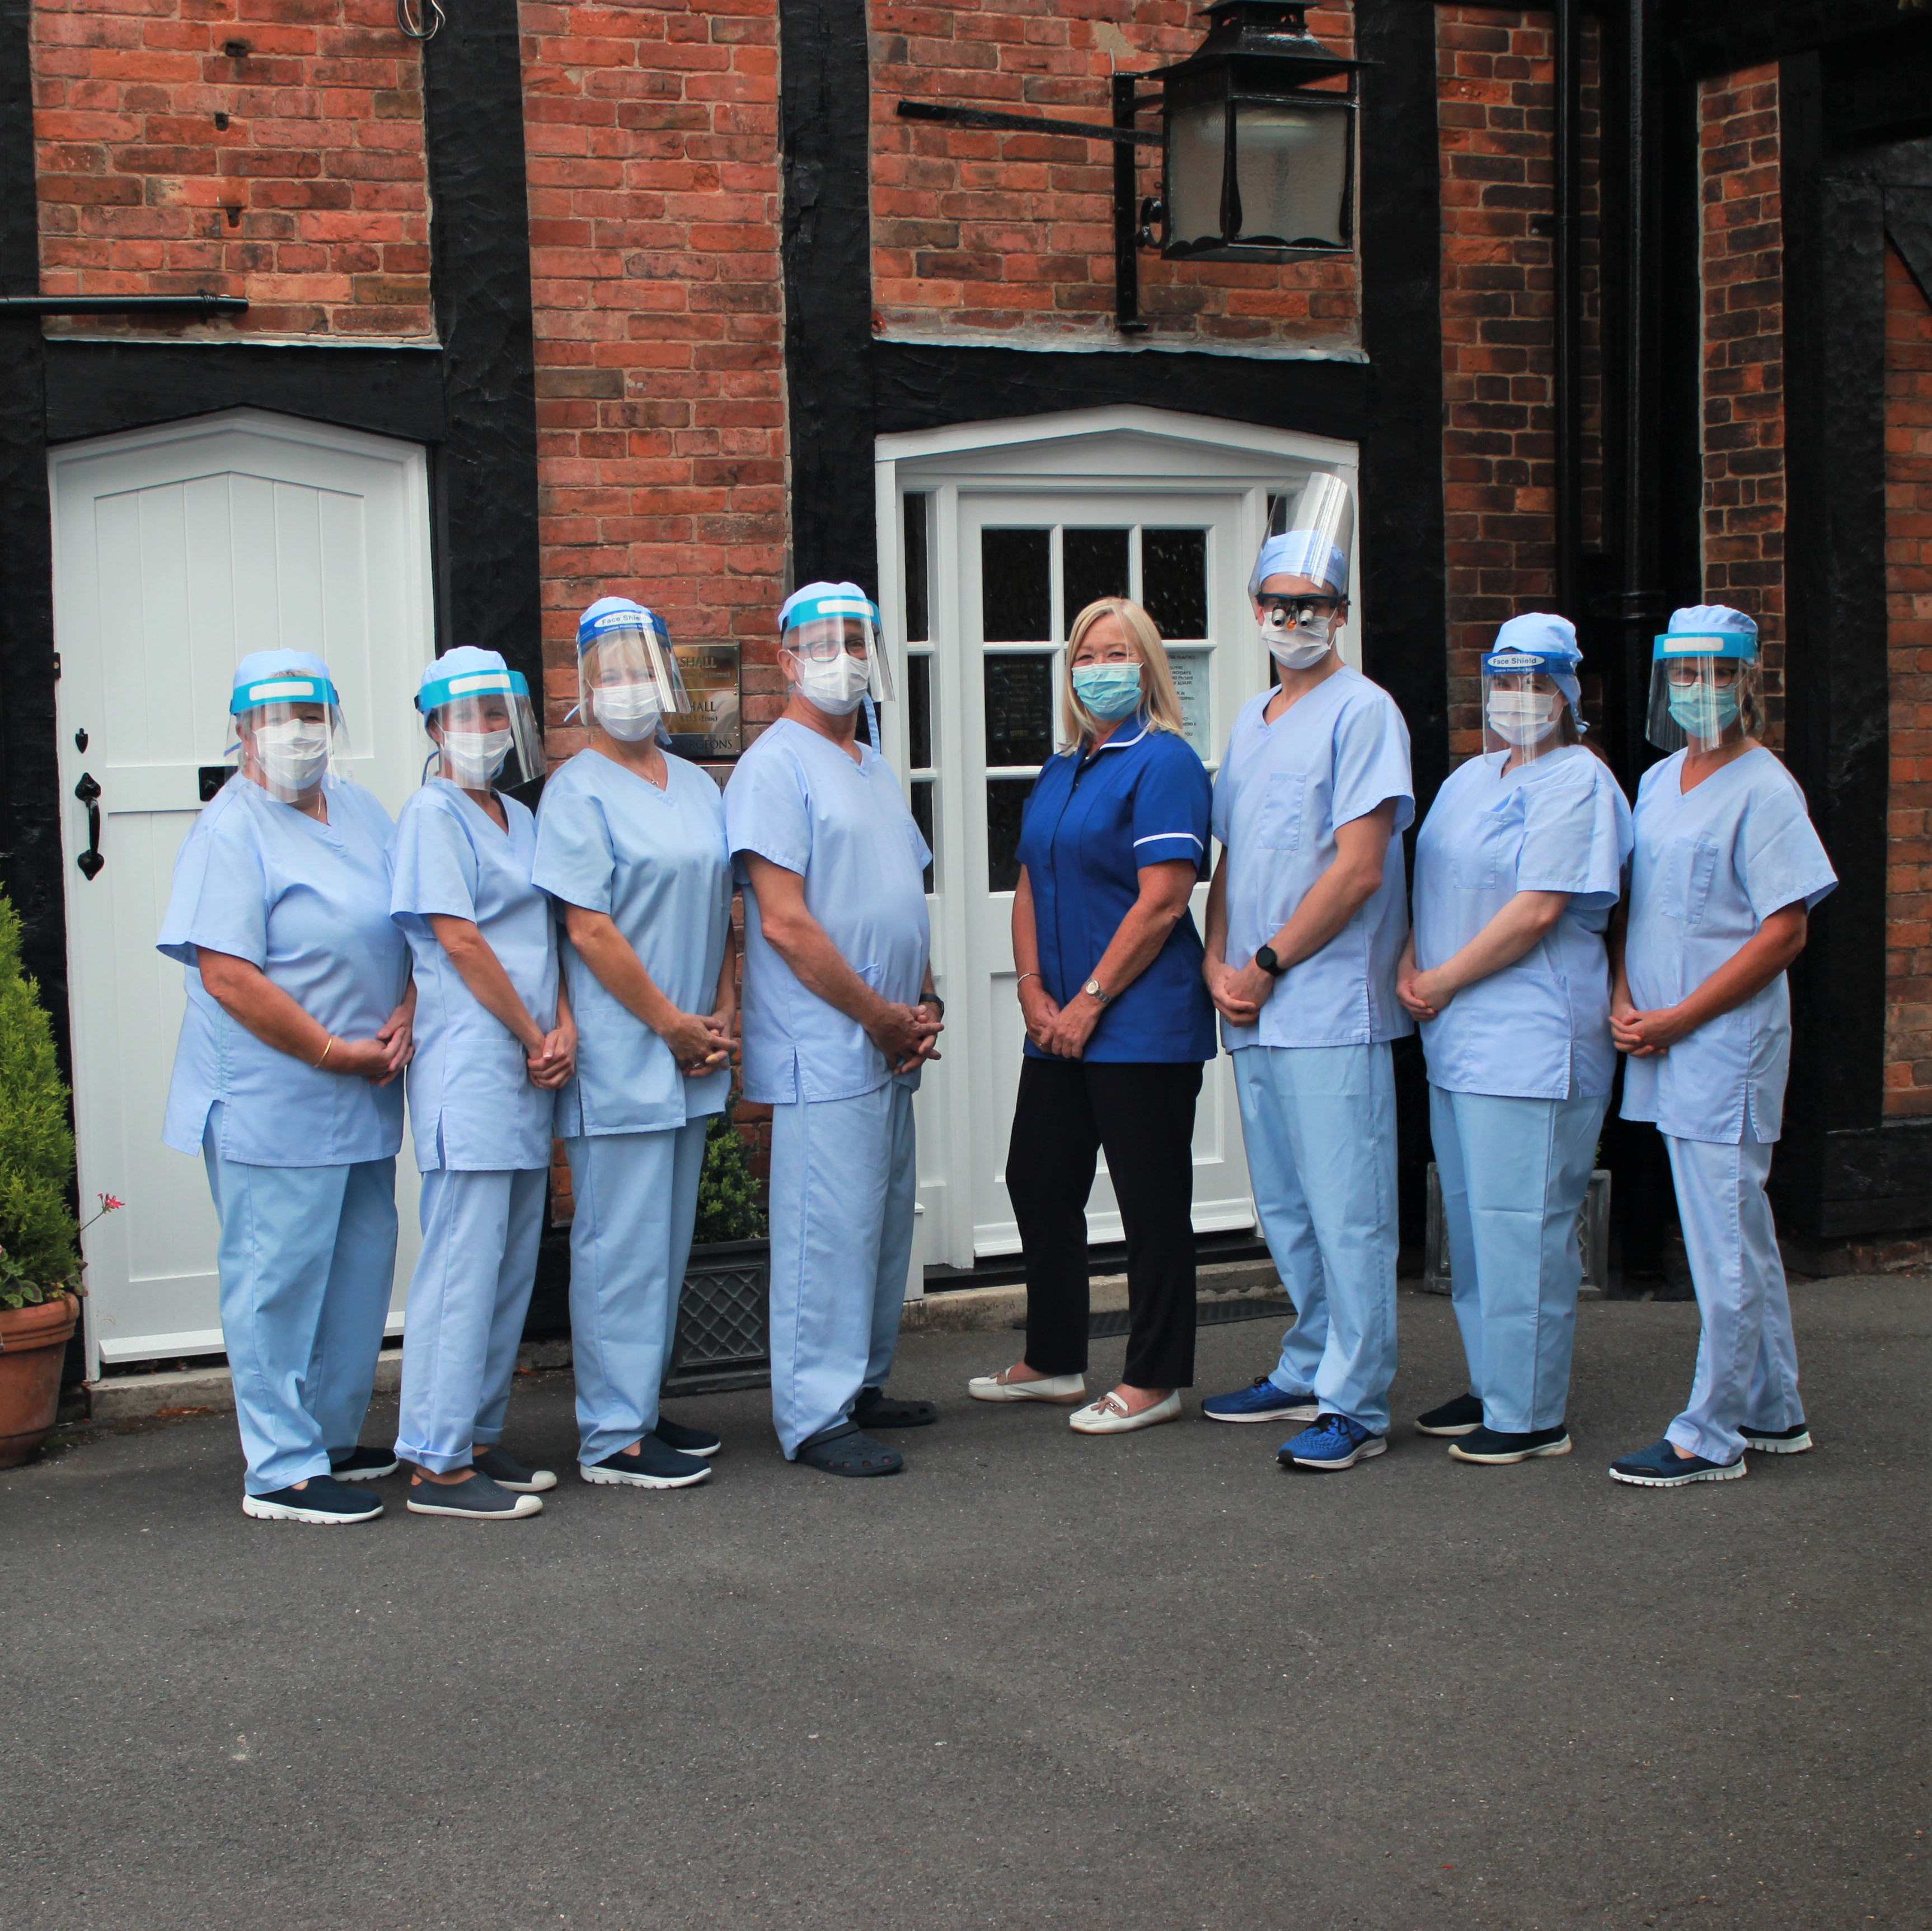 The Dental Practice Team - Duffield